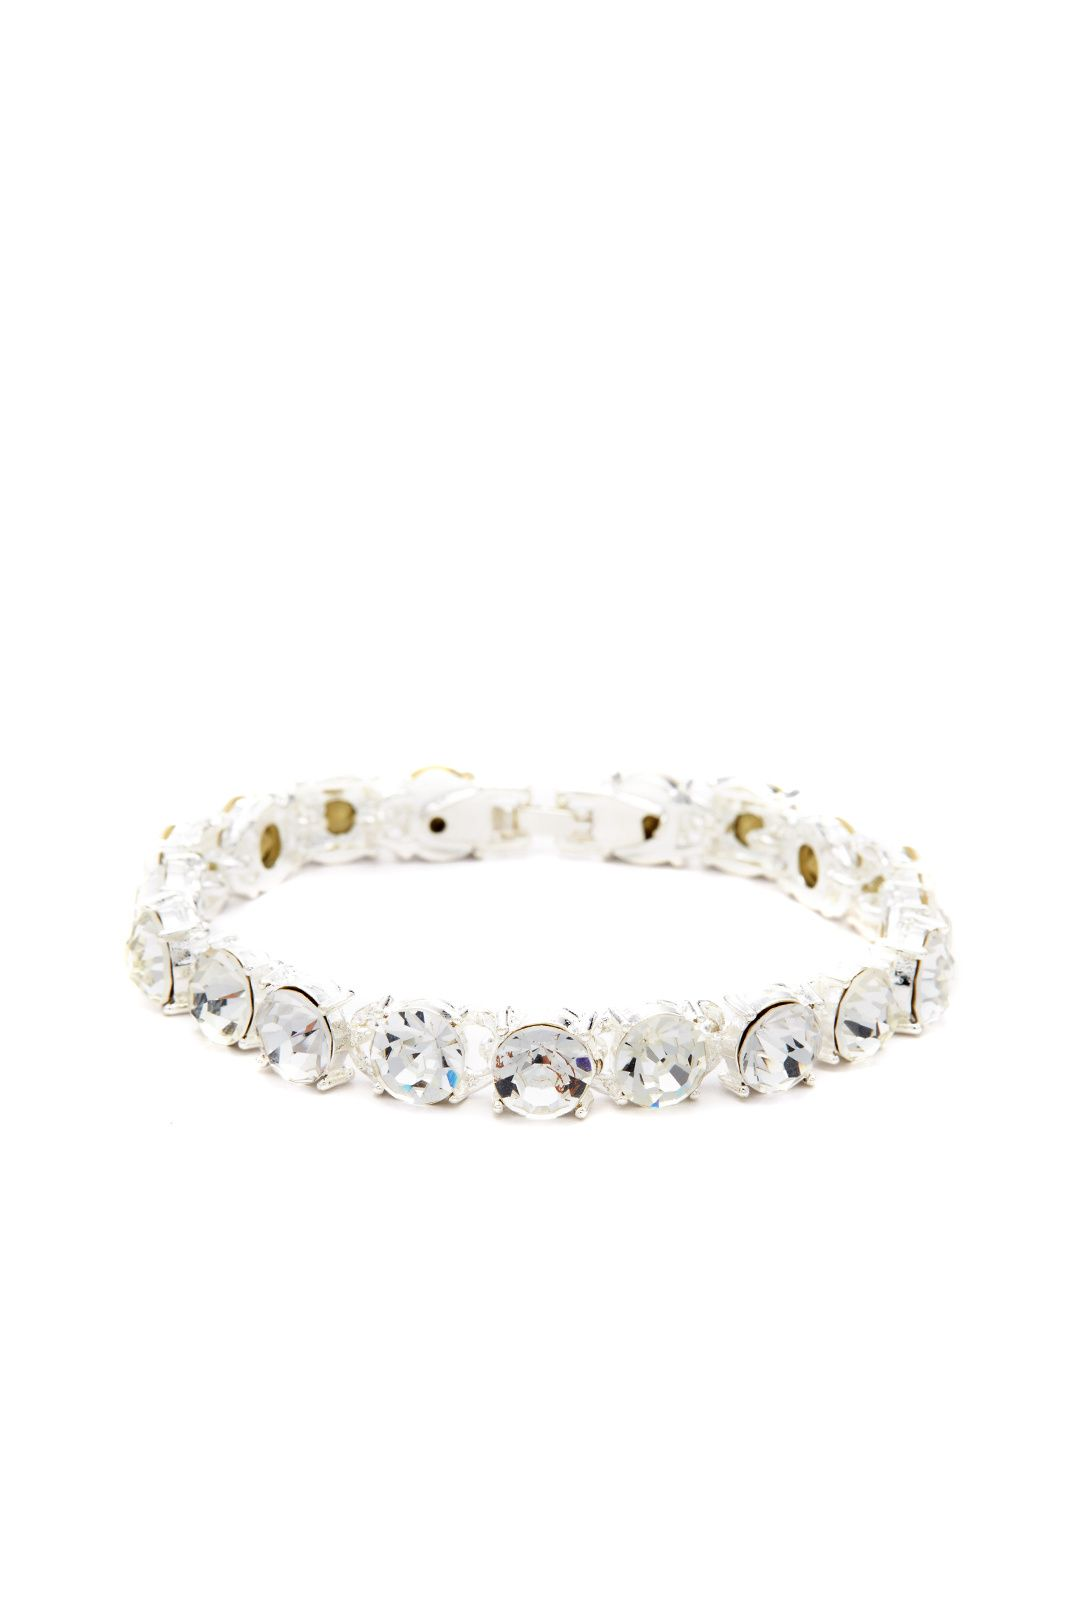 b85ff77c26b6b6 Luxe Crystal Tennis Bracelet by Slate   Willow Accessories for  5